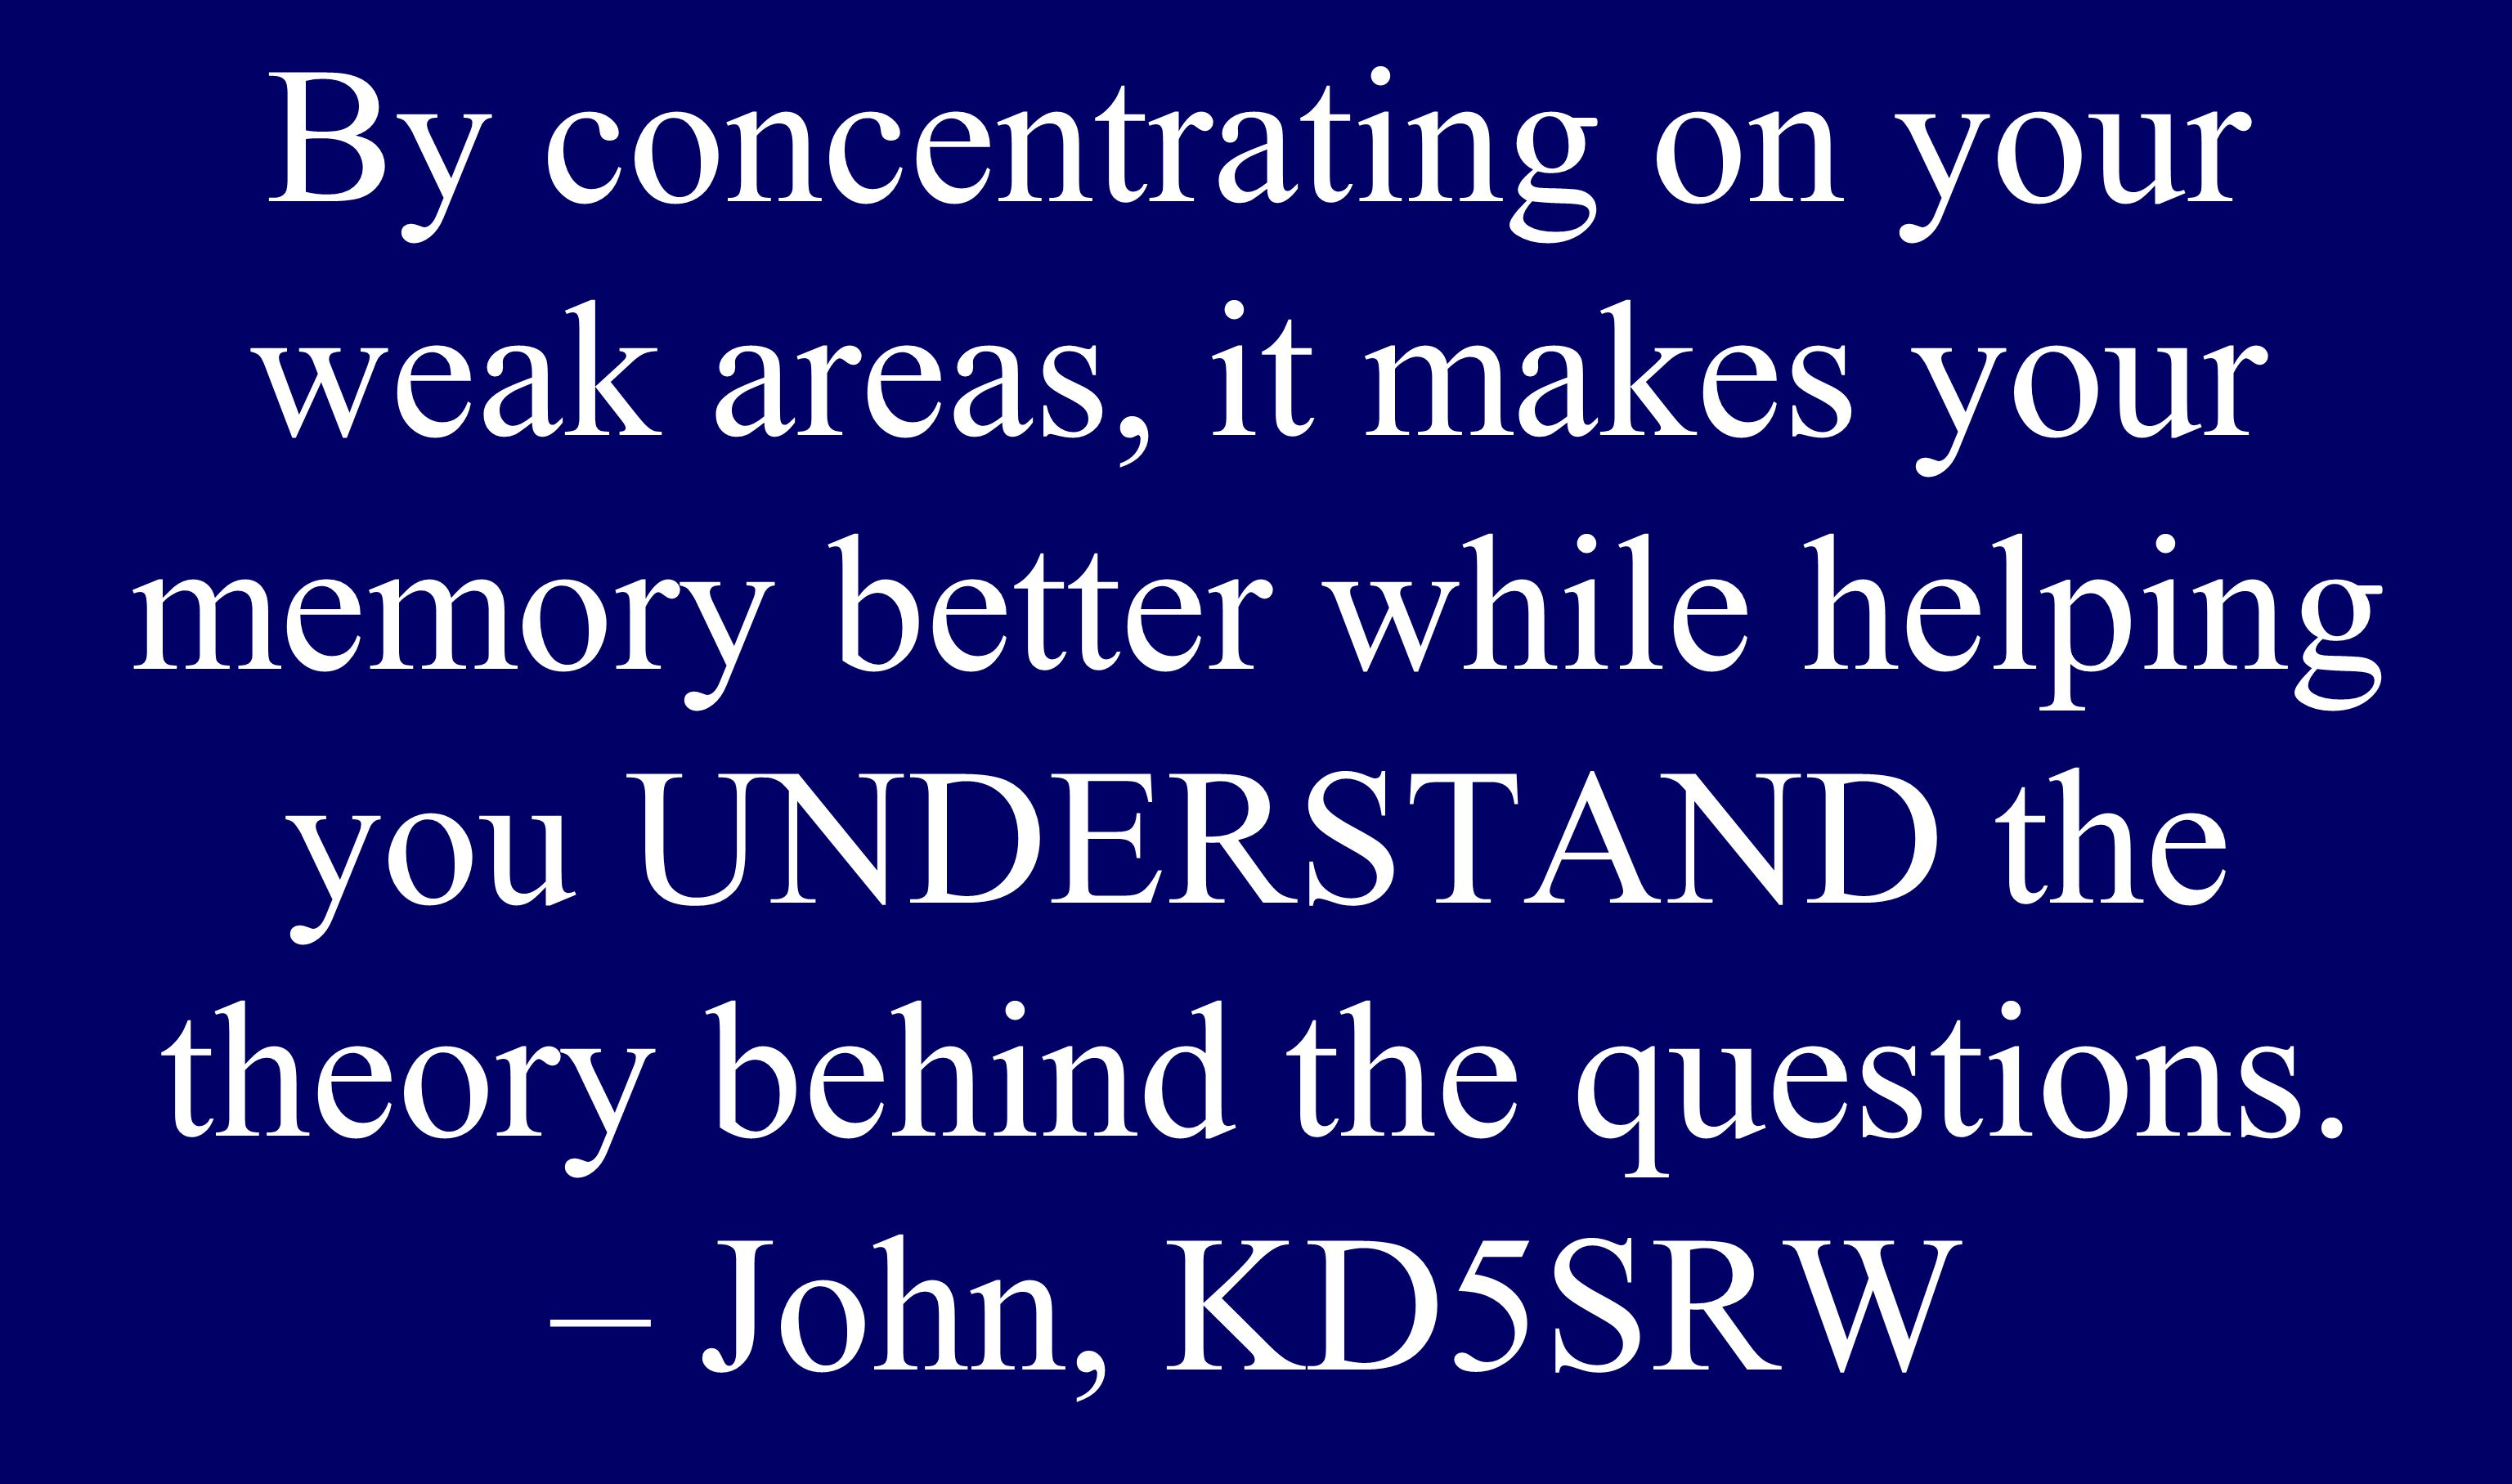 By concentrating on your weak areas, it makes your memory better while helping you UNDERSTAND the theory behind the questions. – John, KD5SRW